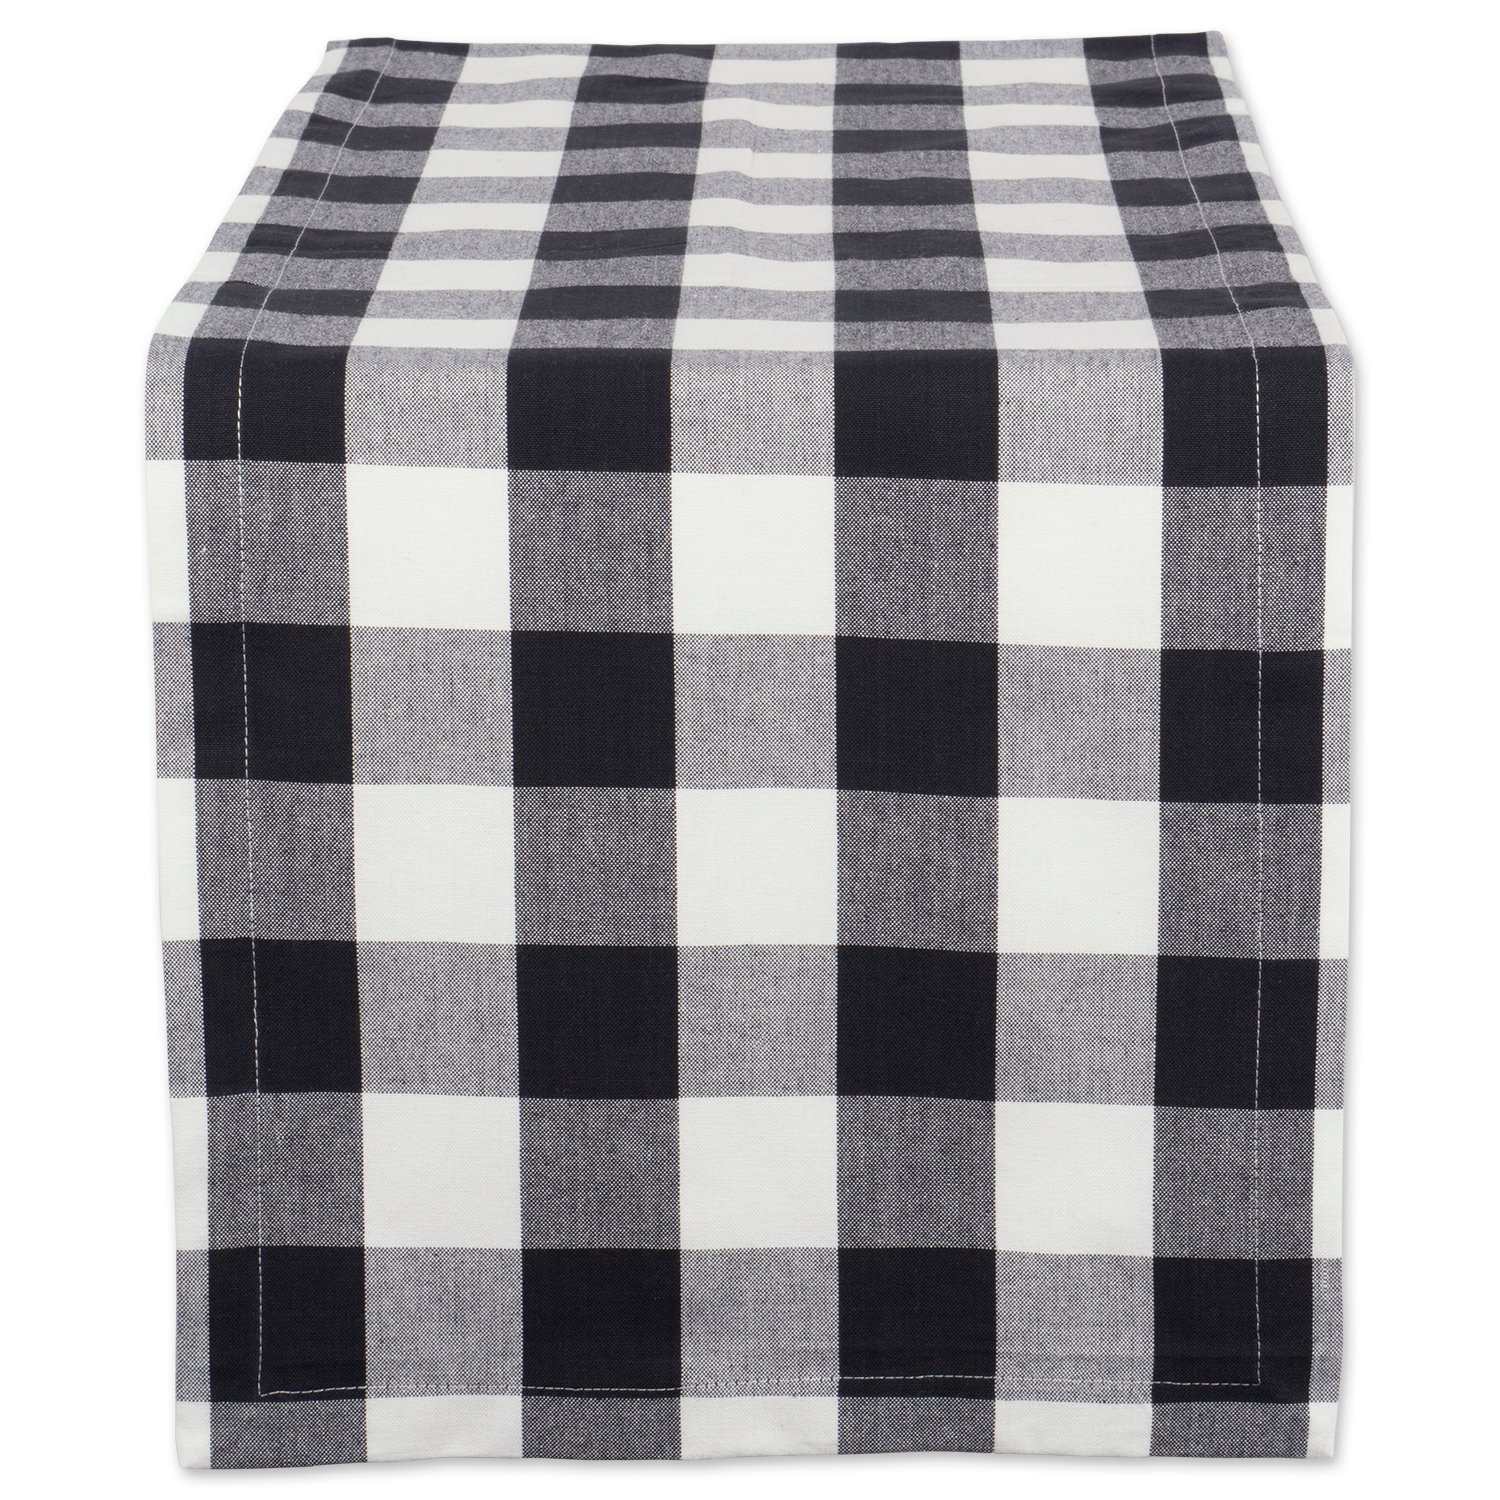 DII Cotton Buffalo Check Table Runner for Family Dinners or Gatherings, Indoor or Outdoor Parties, & Everyday Use (14x108'',  Seats 8-10 People), Black & White